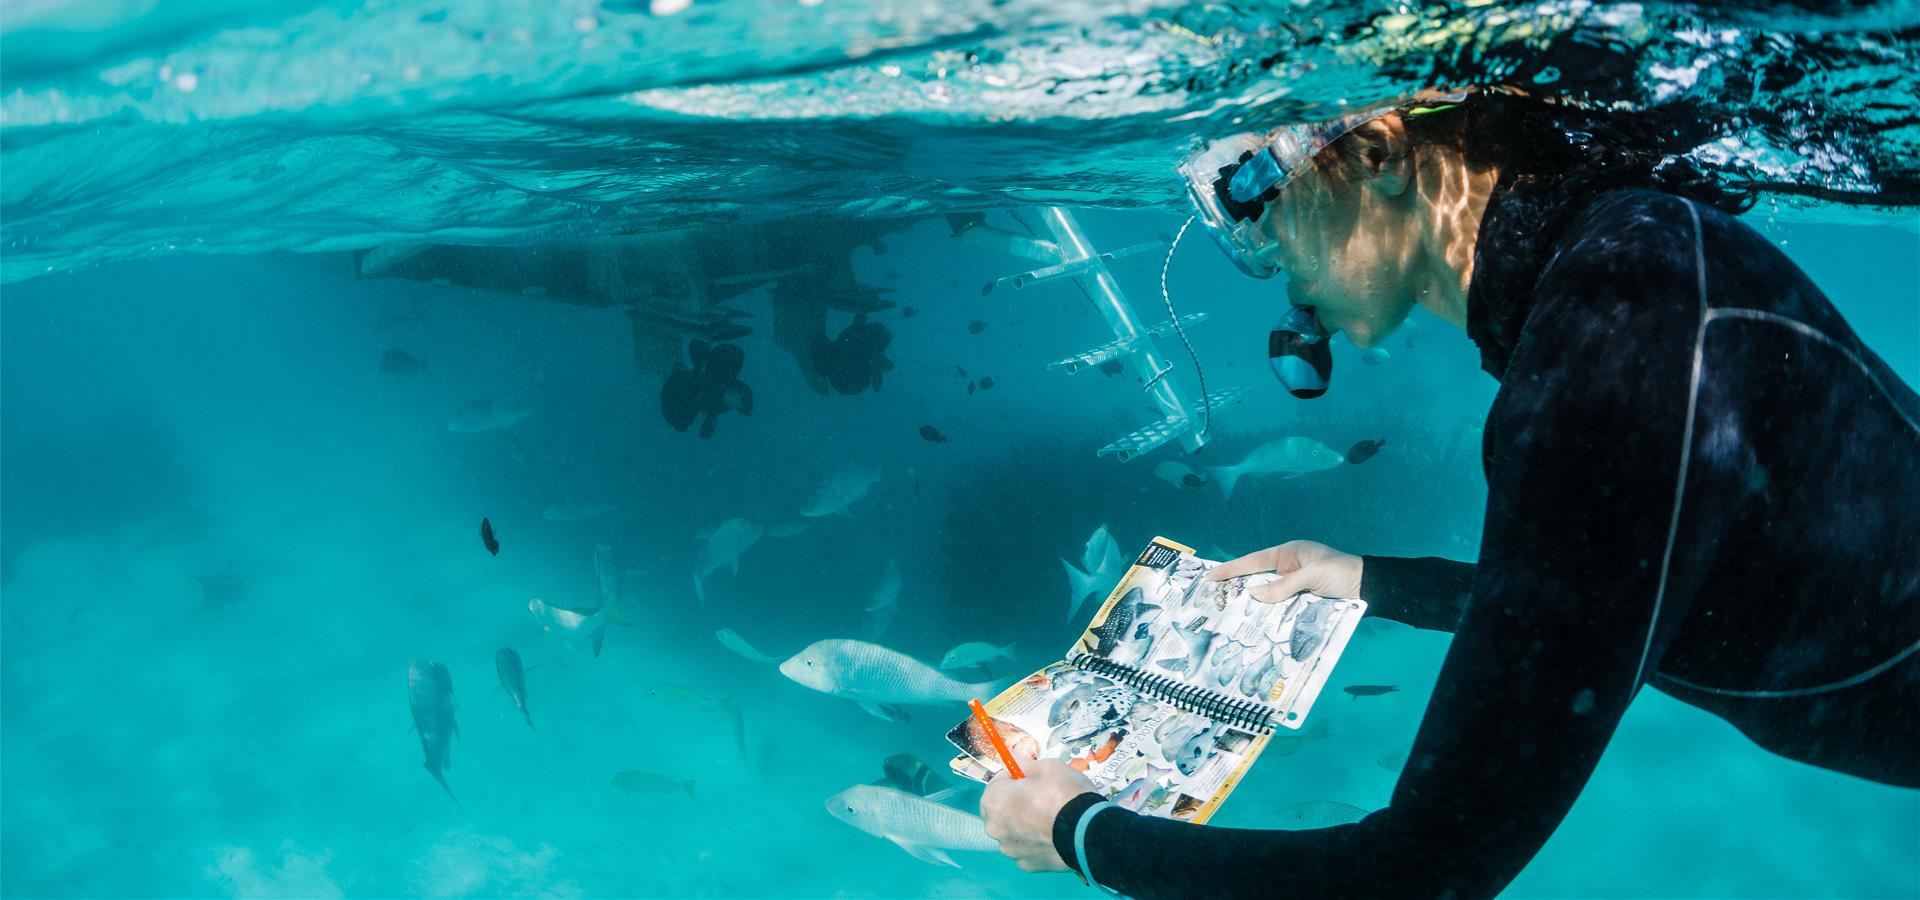 Student observes chart of fish while snorkelling